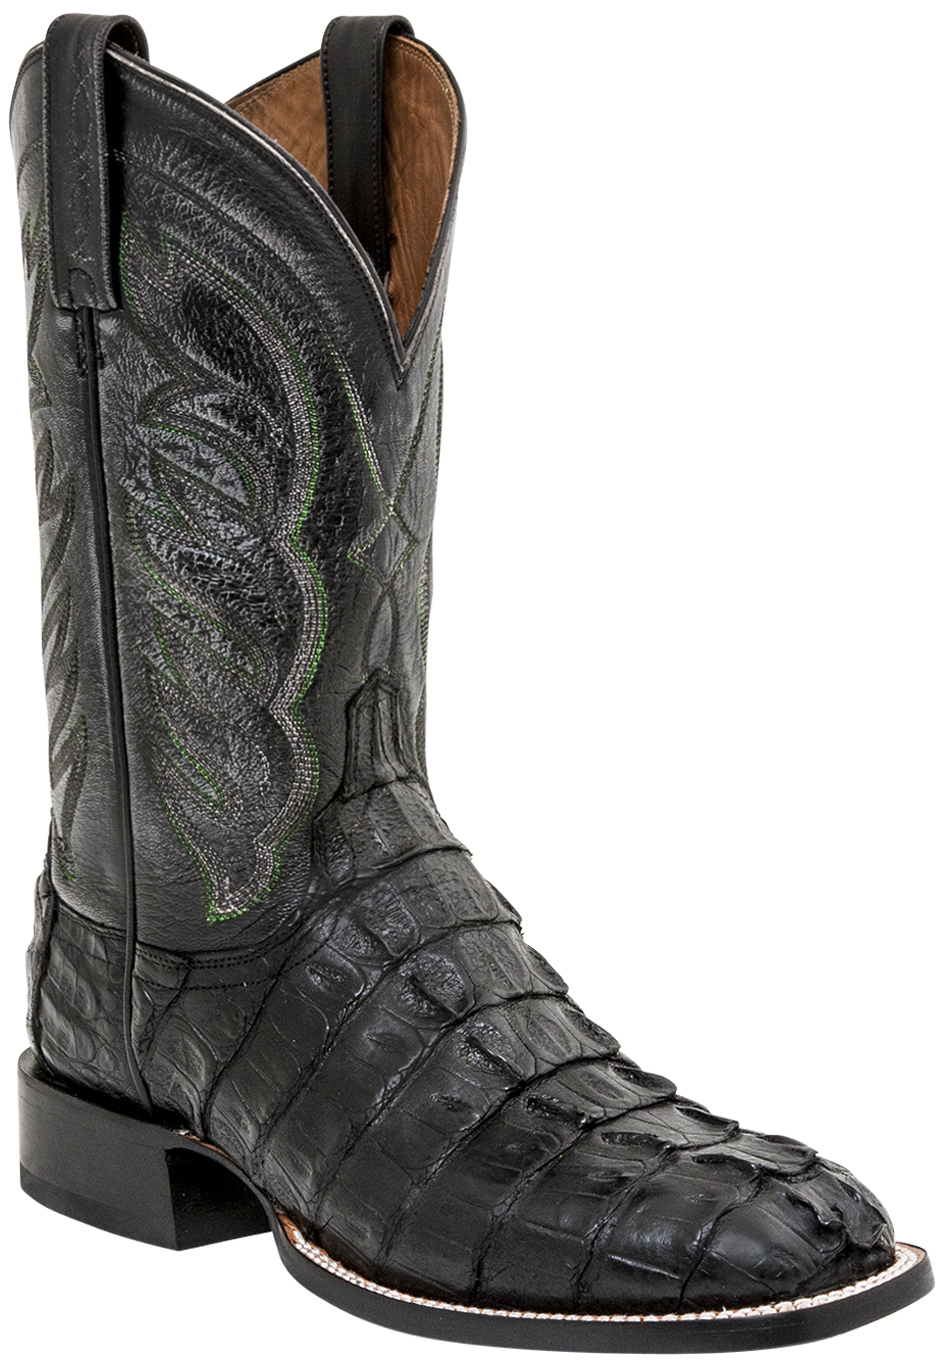 Lucchese 1883 Landon Hornback Caiman Tail Cowboy Boots